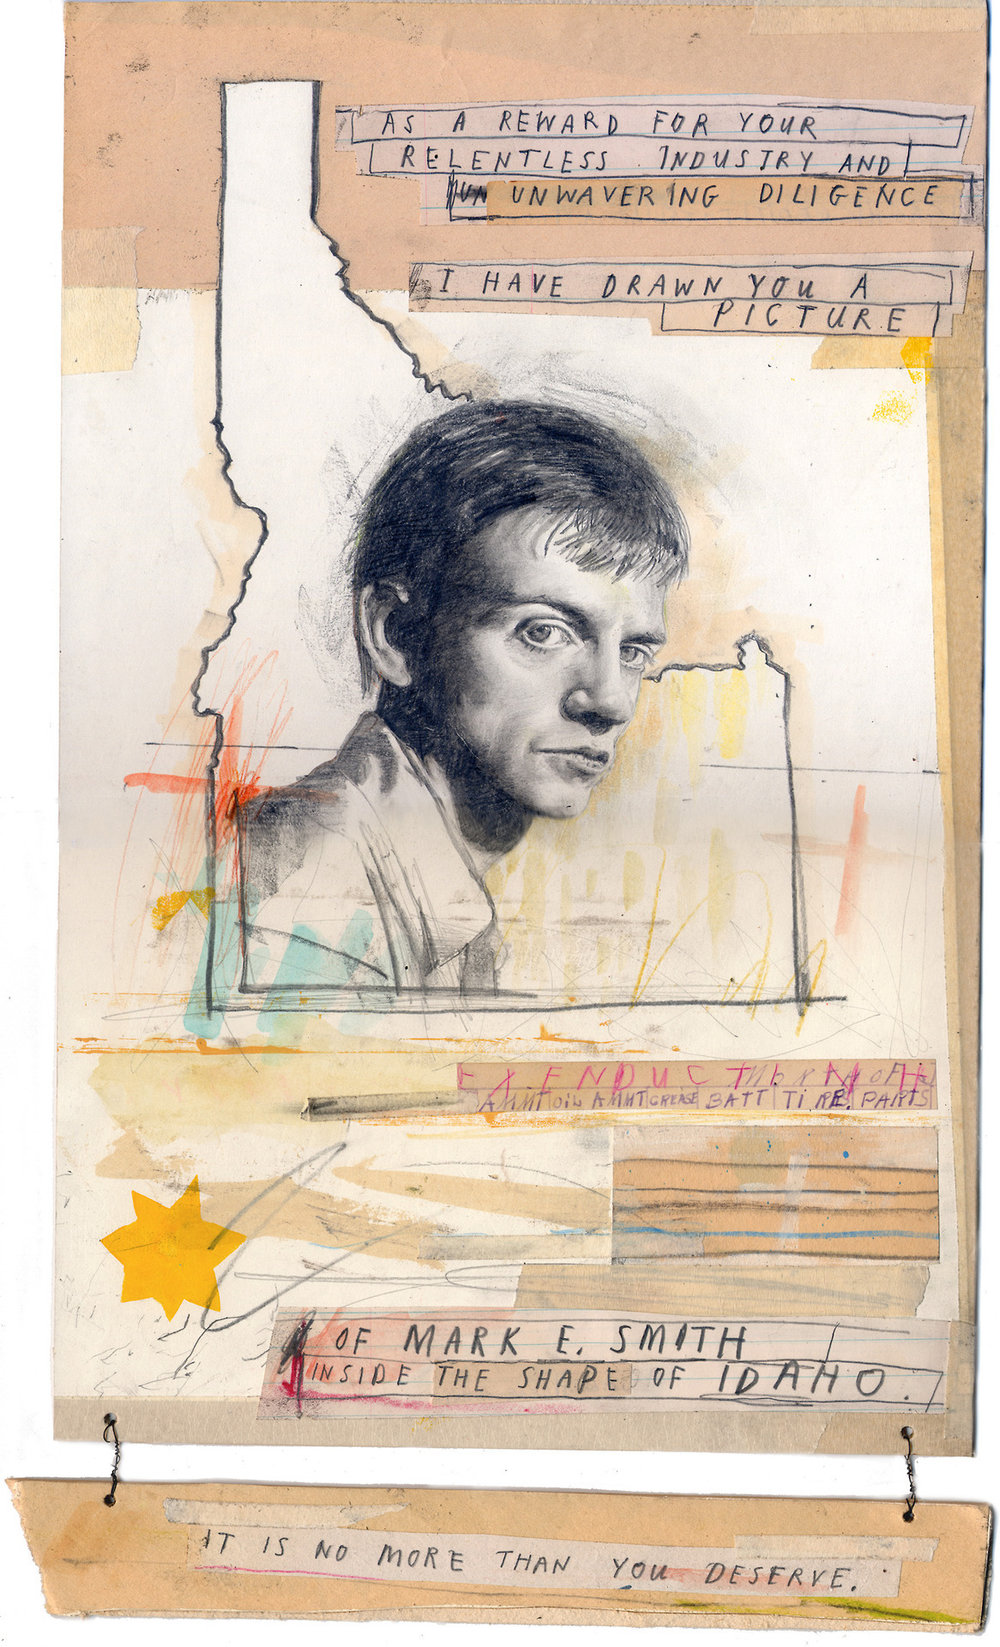 A drawing of  Mark E Smith  inside the shape of Idaho. What more could you possibly want?